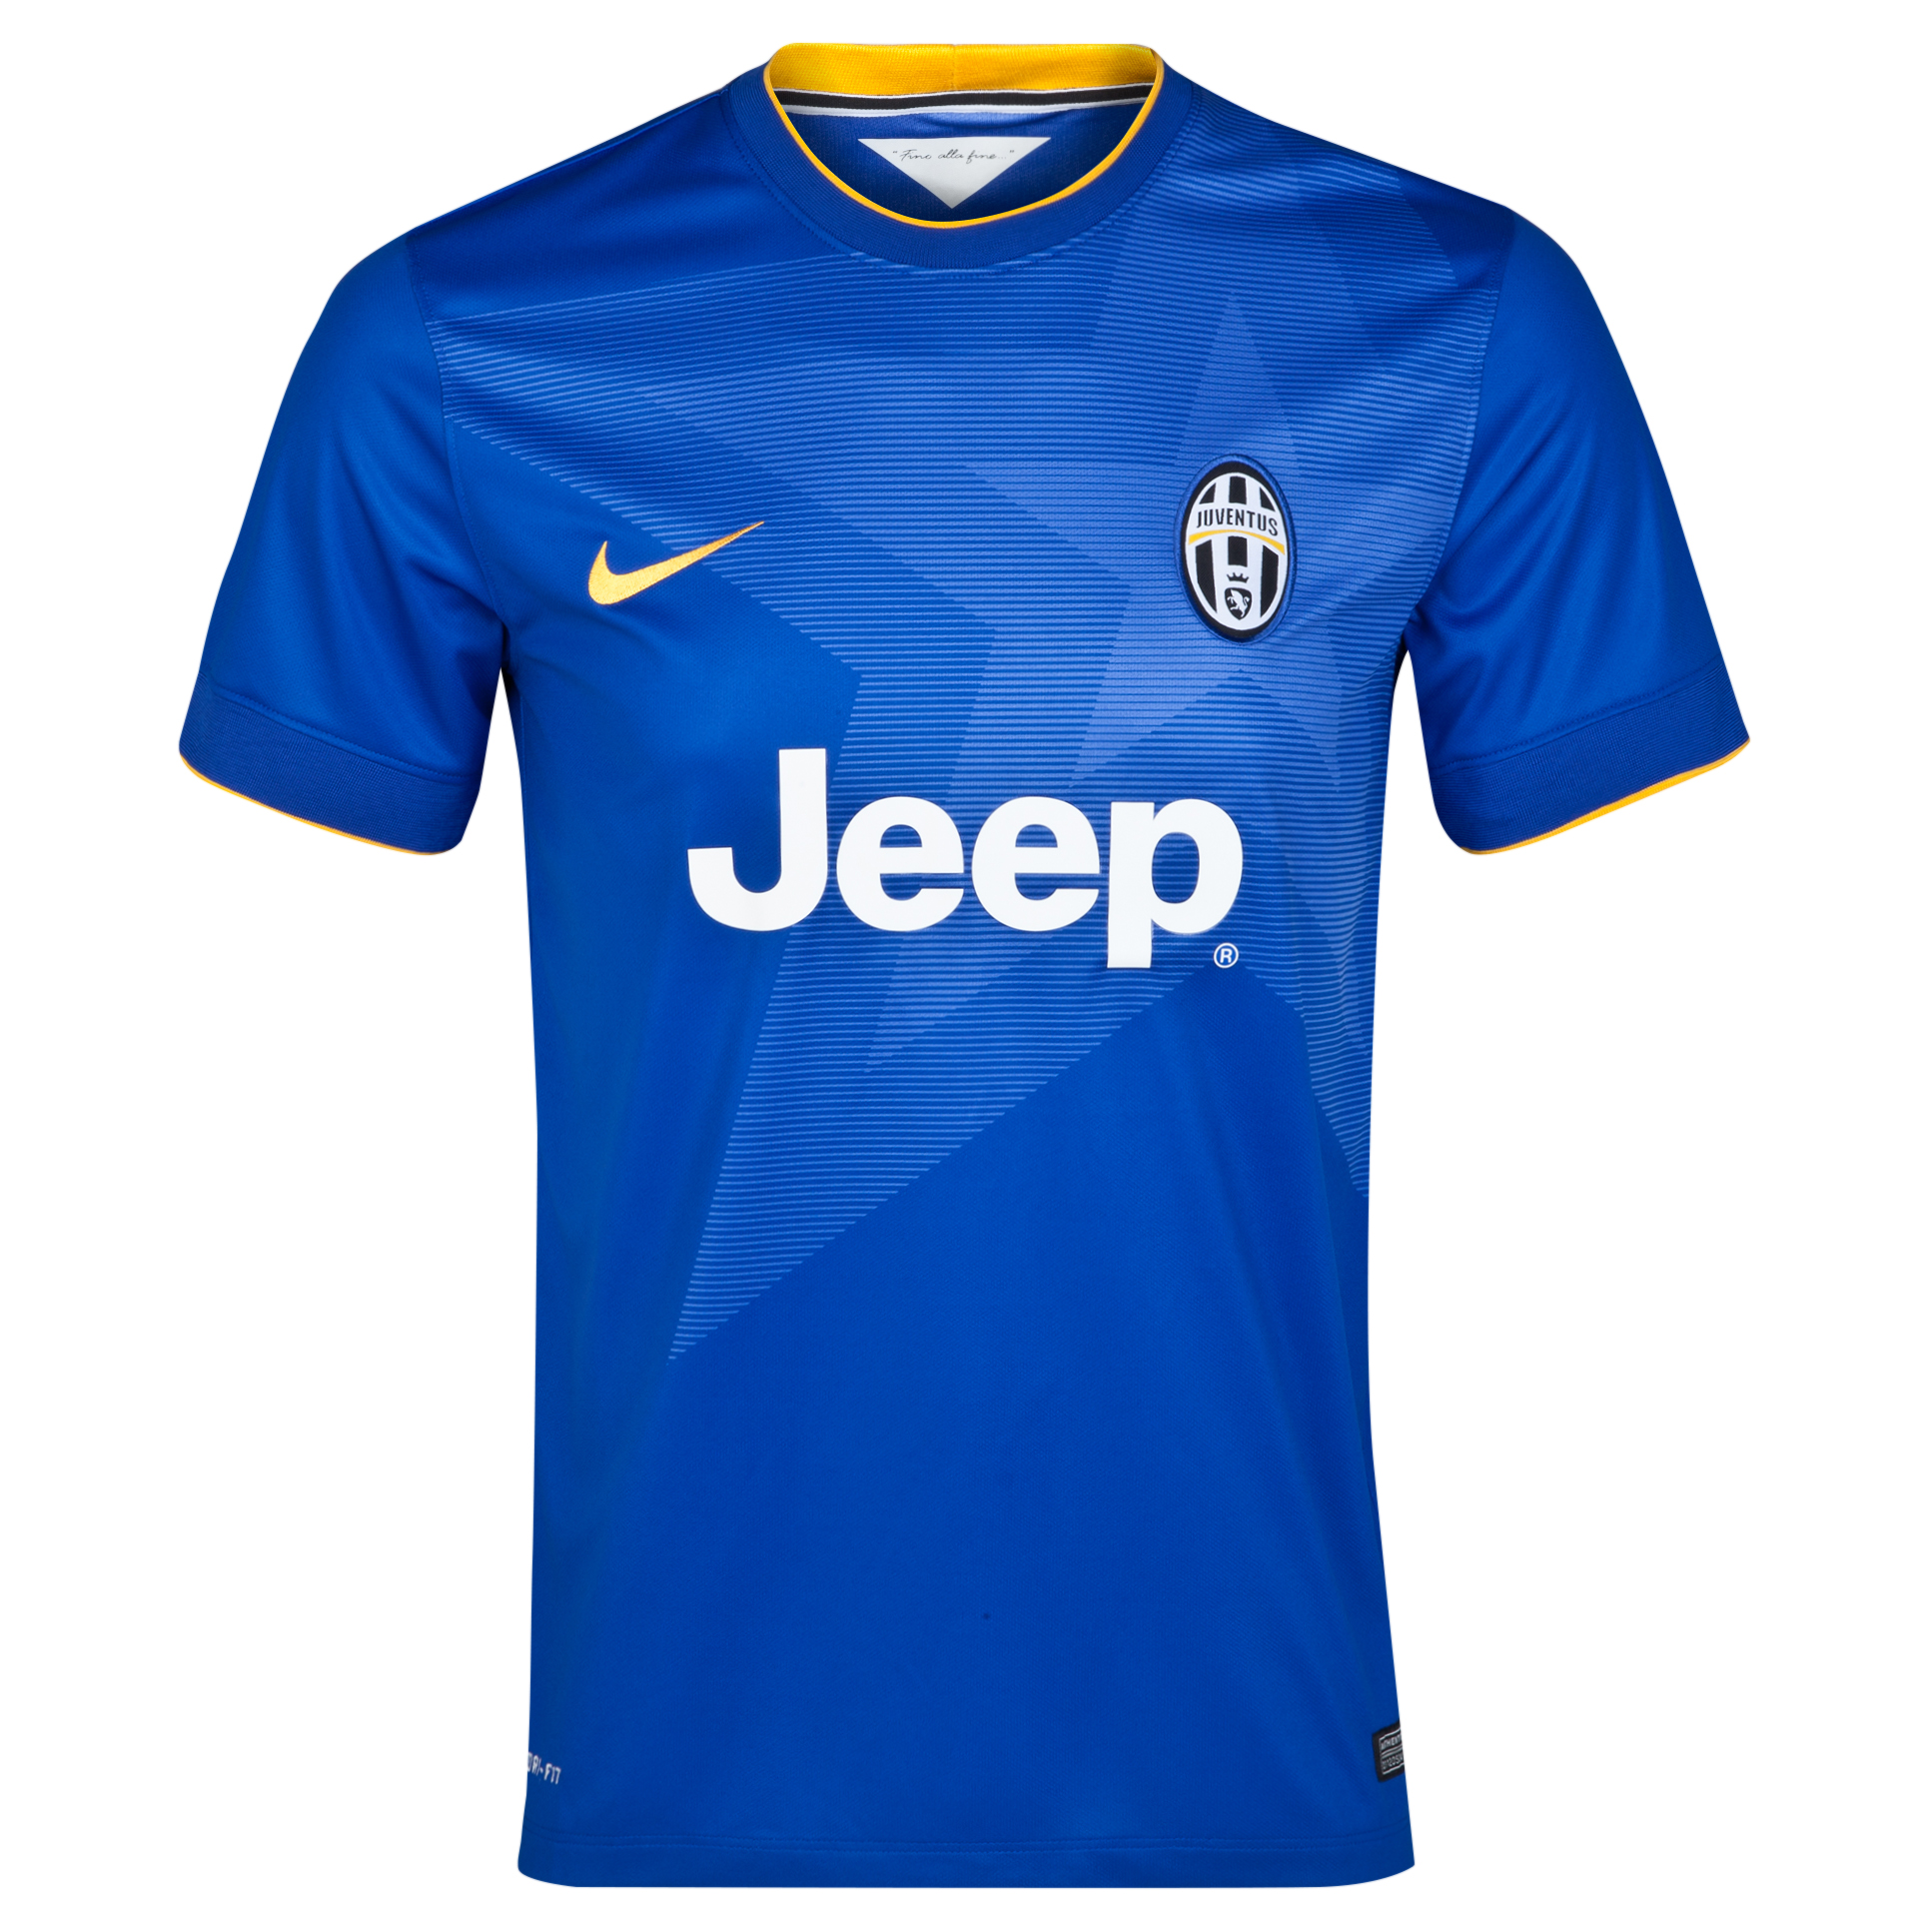 Juventus Away Shirt 2014/15 Blue